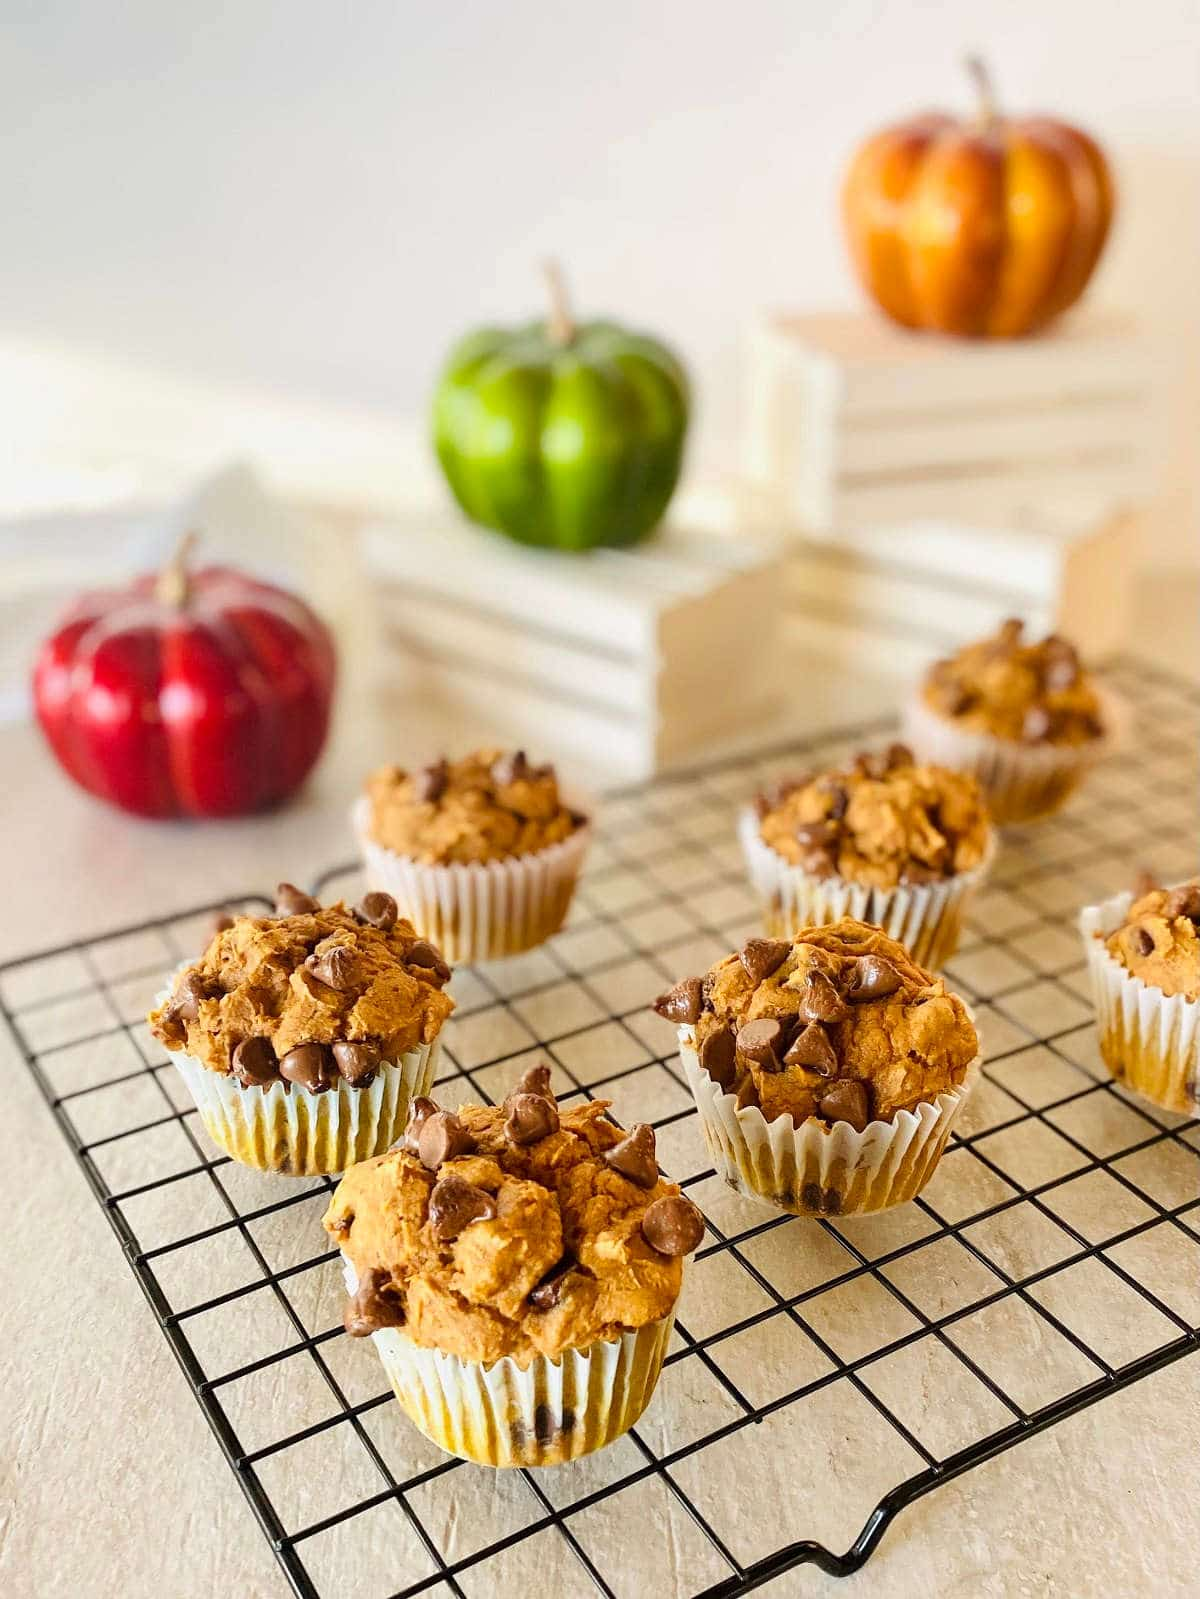 three ingredient pumpkin muffins on a baking rack with pumpkins in the background